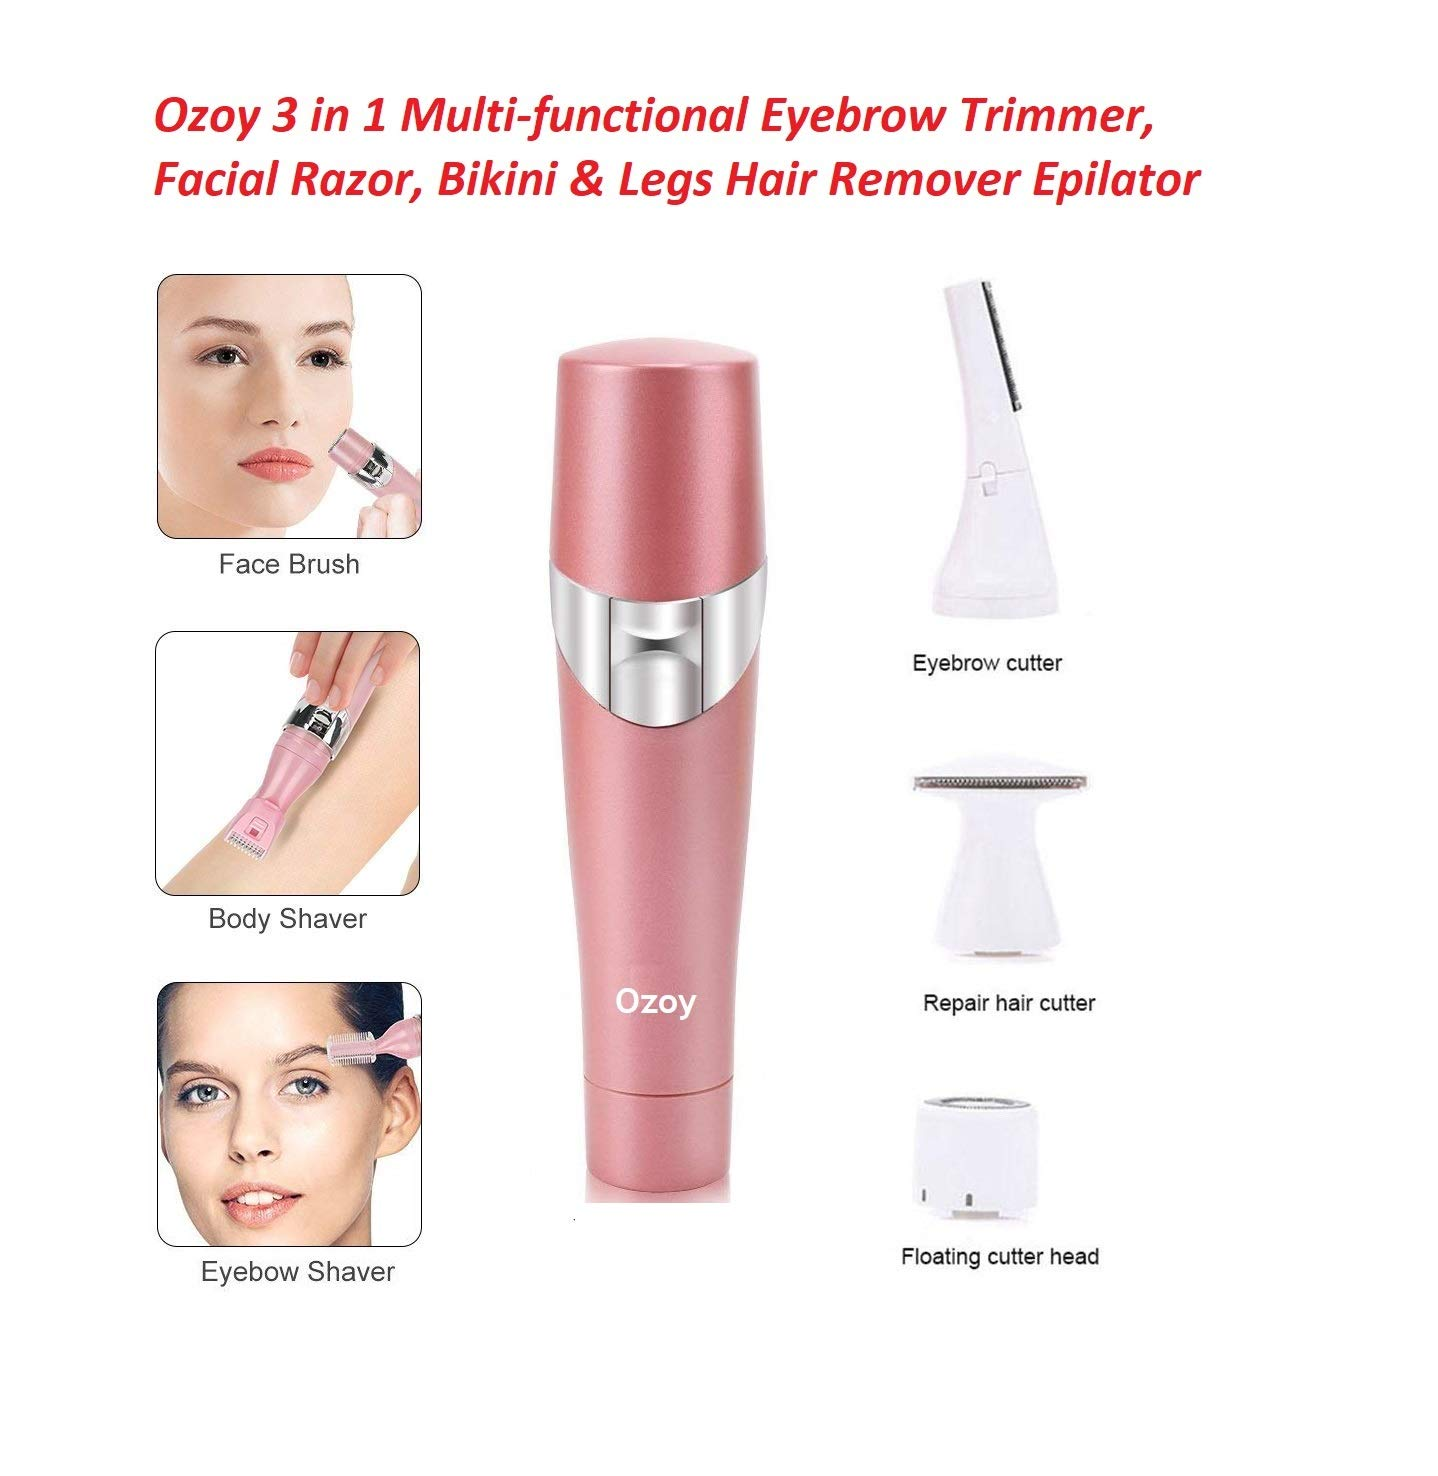 Ozoy Facial Hair Removal 3 in 1 Multi-functional Eyebrow Trimmer, Razor, Bikini and Legs Hair Remover, and Epilator for Women